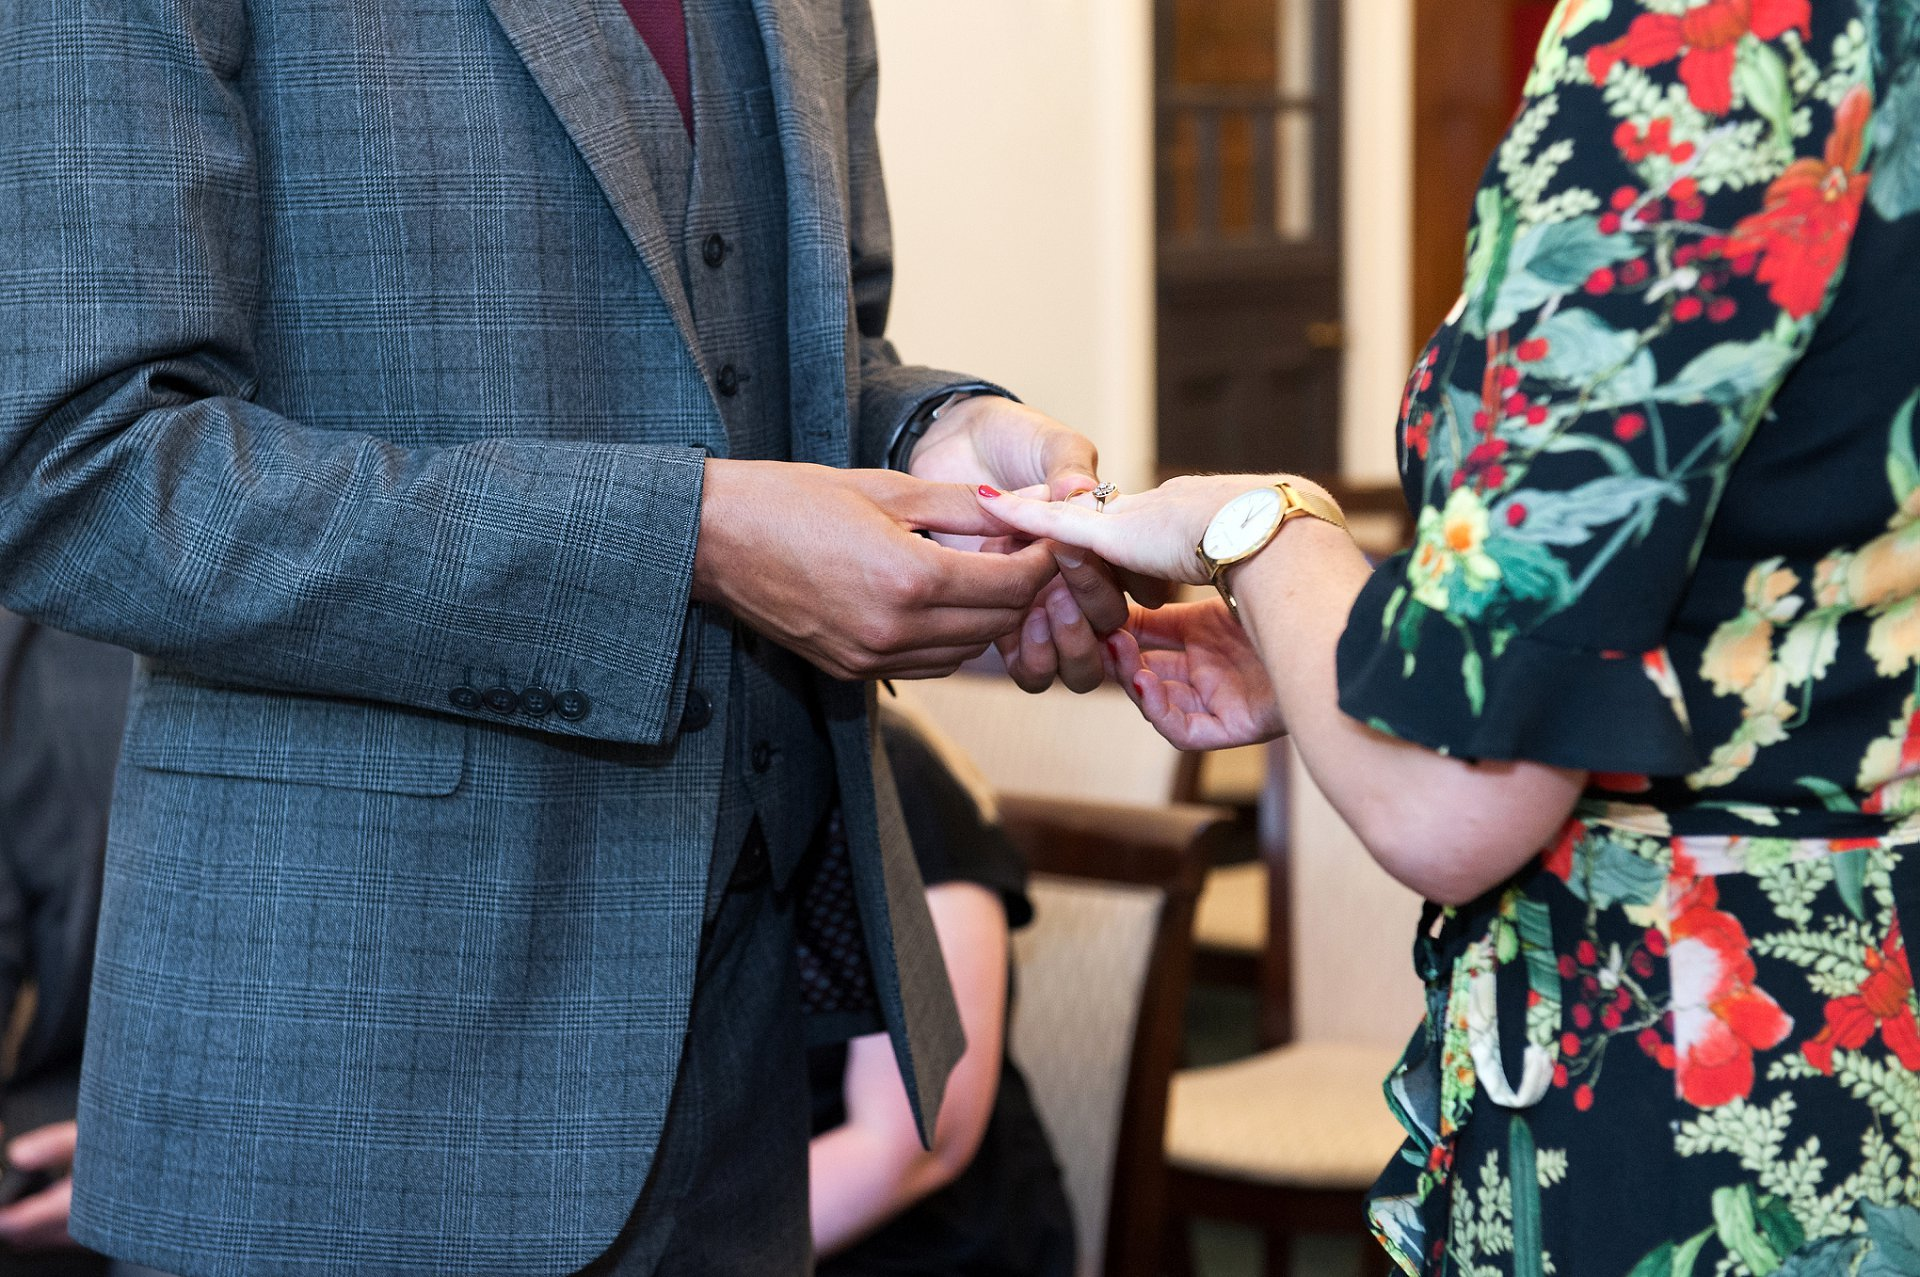 The groom exchanges rings with his new wife at this festive Mayfair Summer wedding